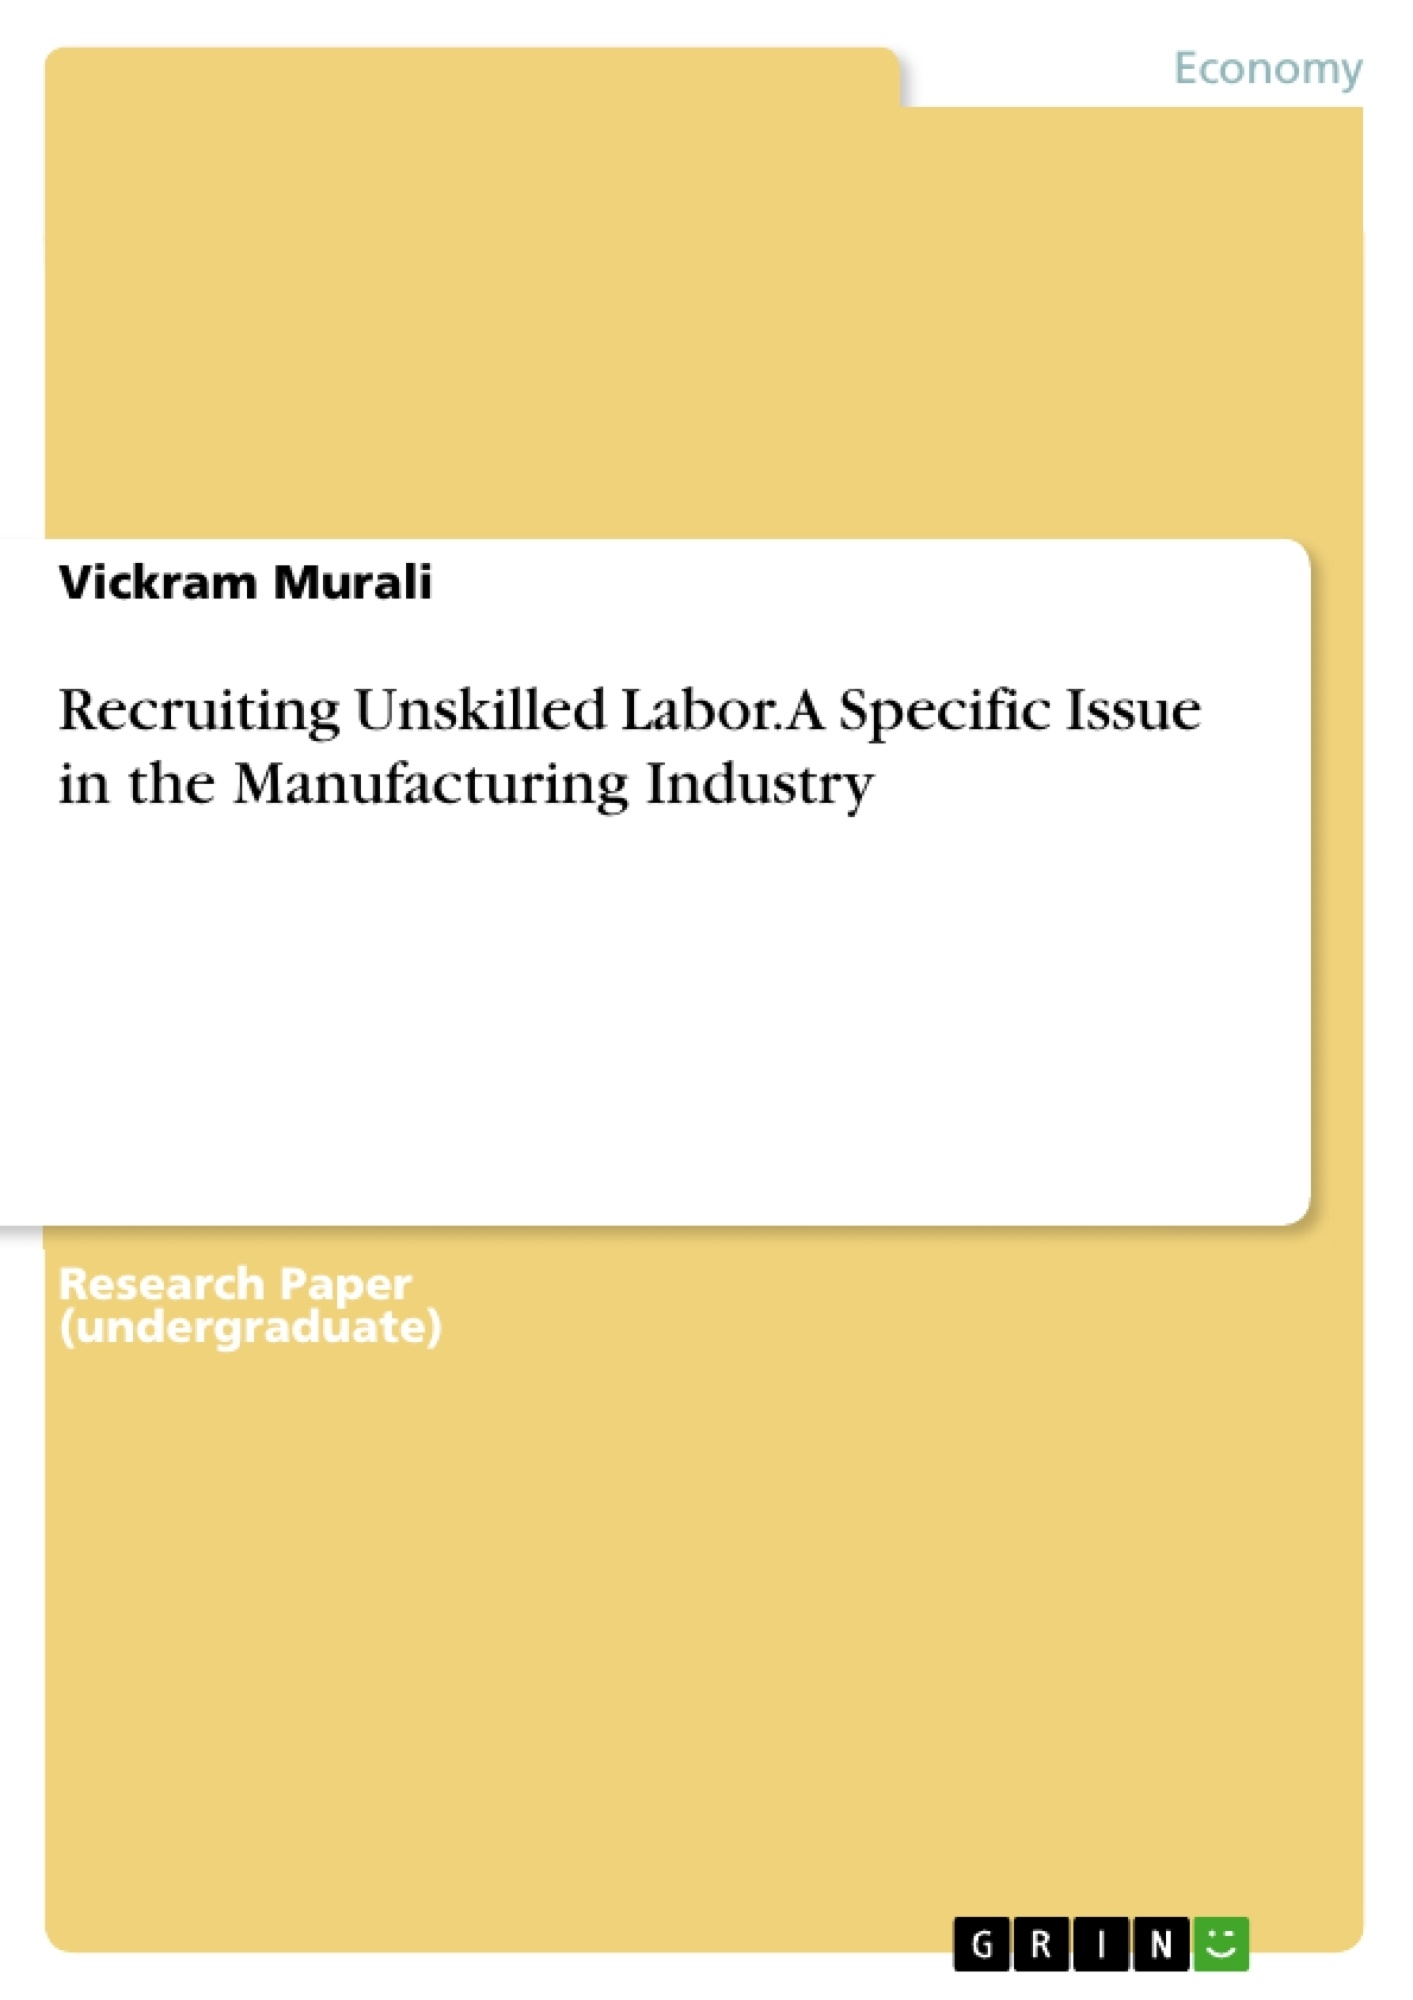 Title: Recruiting Unskilled Labor. A Specific Issue in the Manufacturing Industry